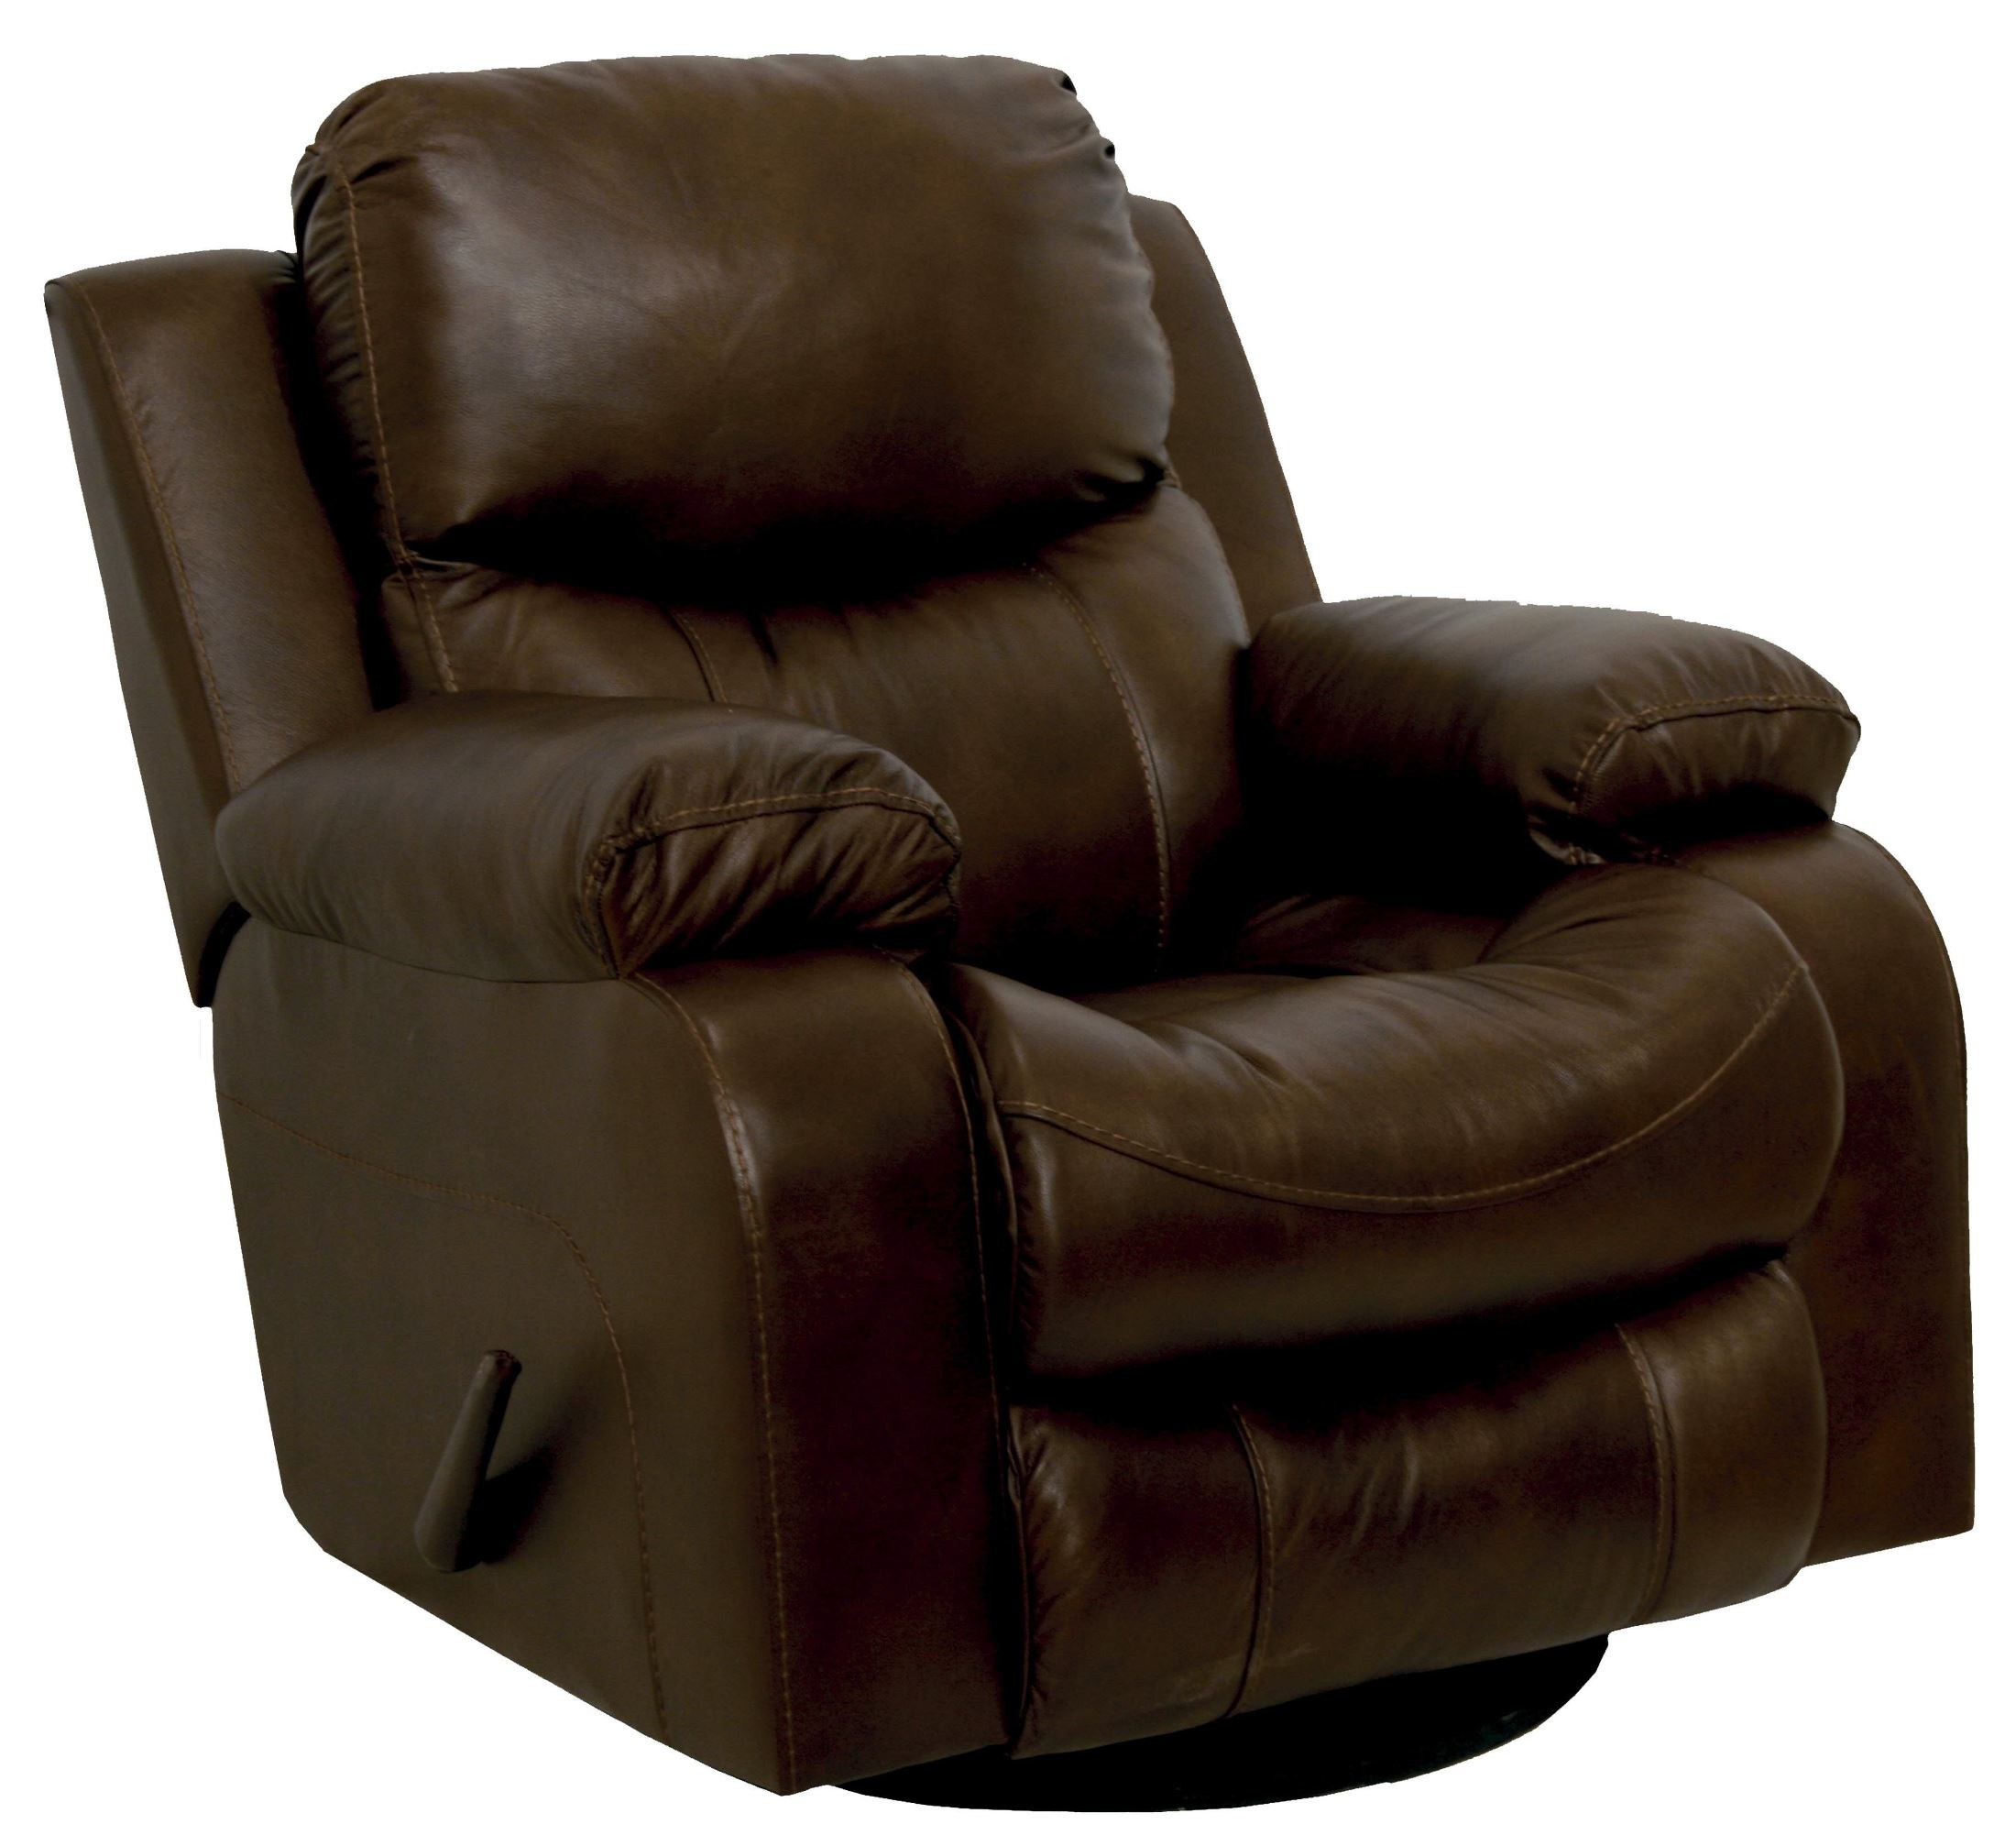 Dallas tobacco recliner from catnapper 49505100000000000 coleman furniture Catnapper loveseat recliner